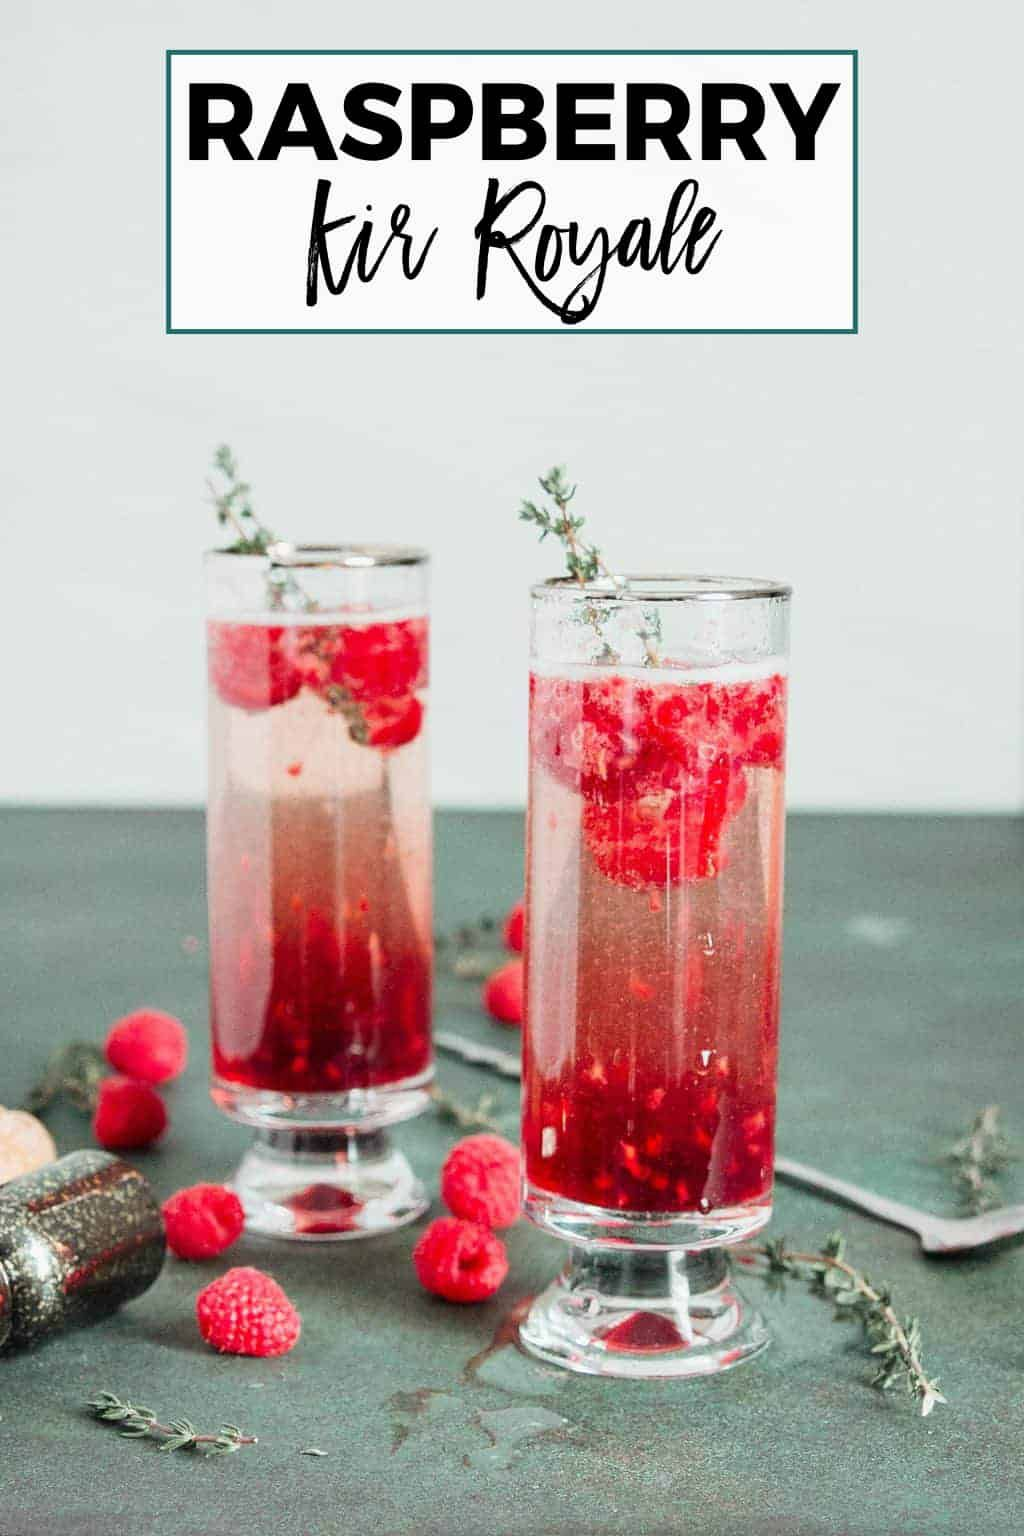 My Raspberry Kir Royale Is A Fun Riff On The Classic Kir Royale Just 3 Ingredients And You Have Easy Drink Recipes Best Cocktail Recipes Party Food And Drinks